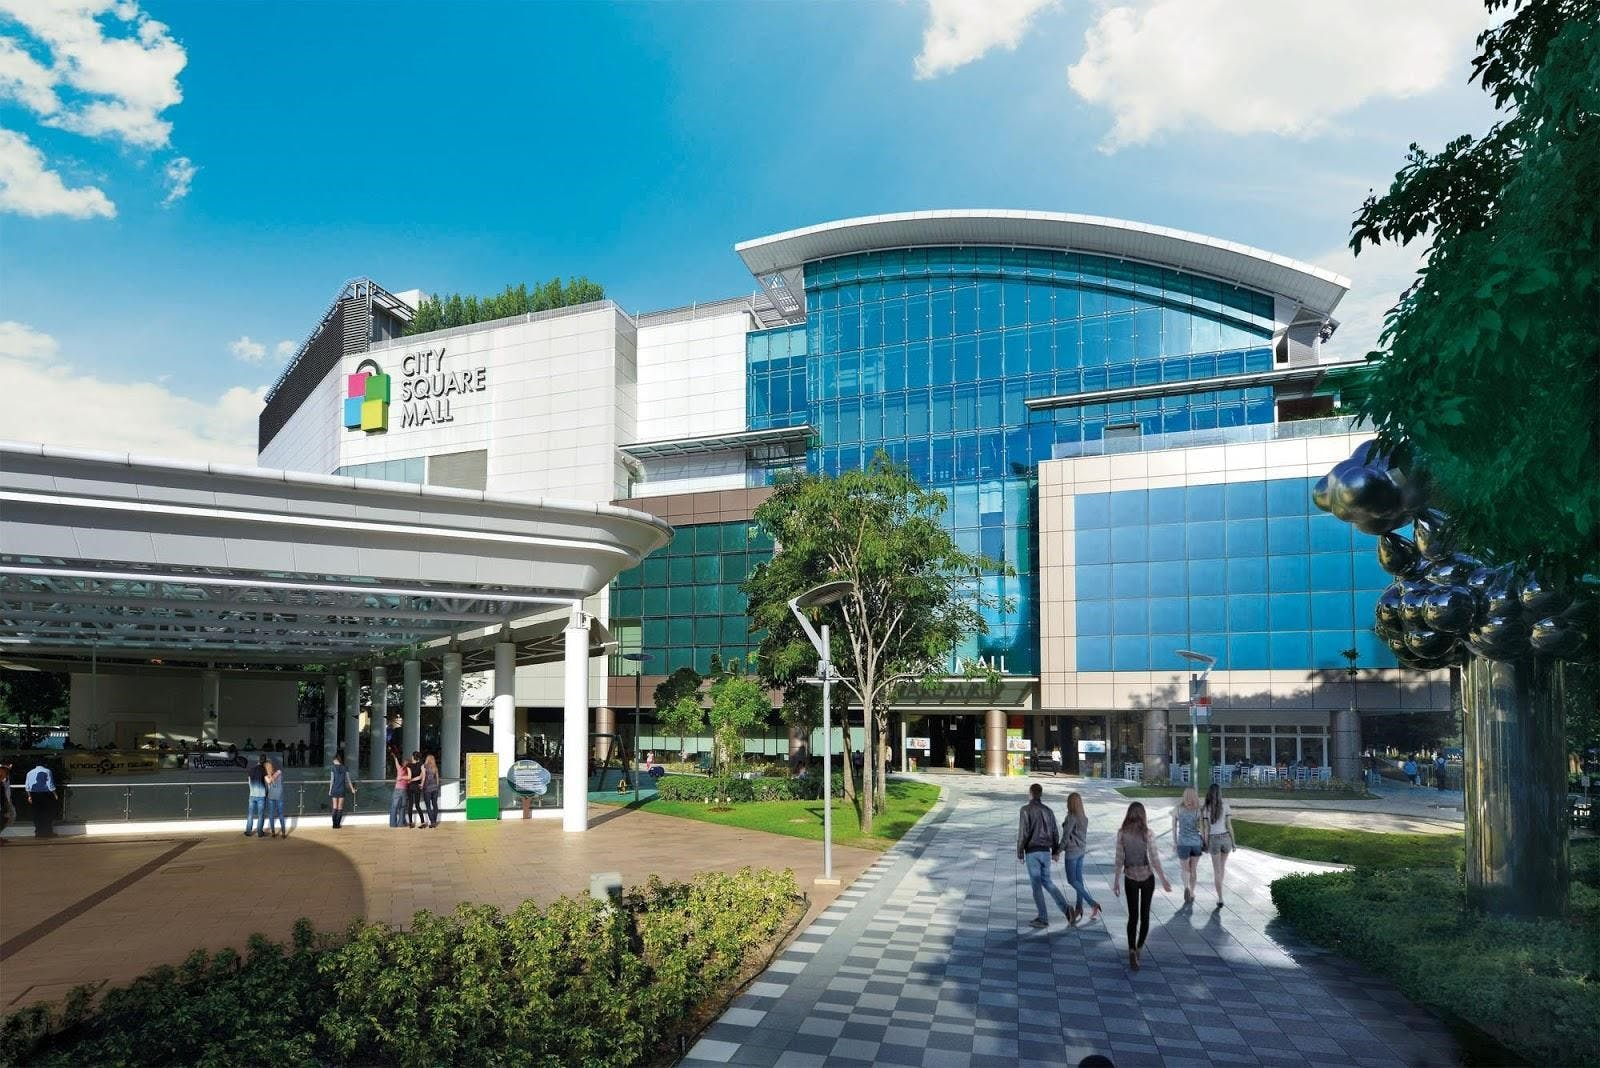 A 10-minute walk from Lavender Residence sits City Square Mall, a popular go-to mall at Farrer Park MRT Station.